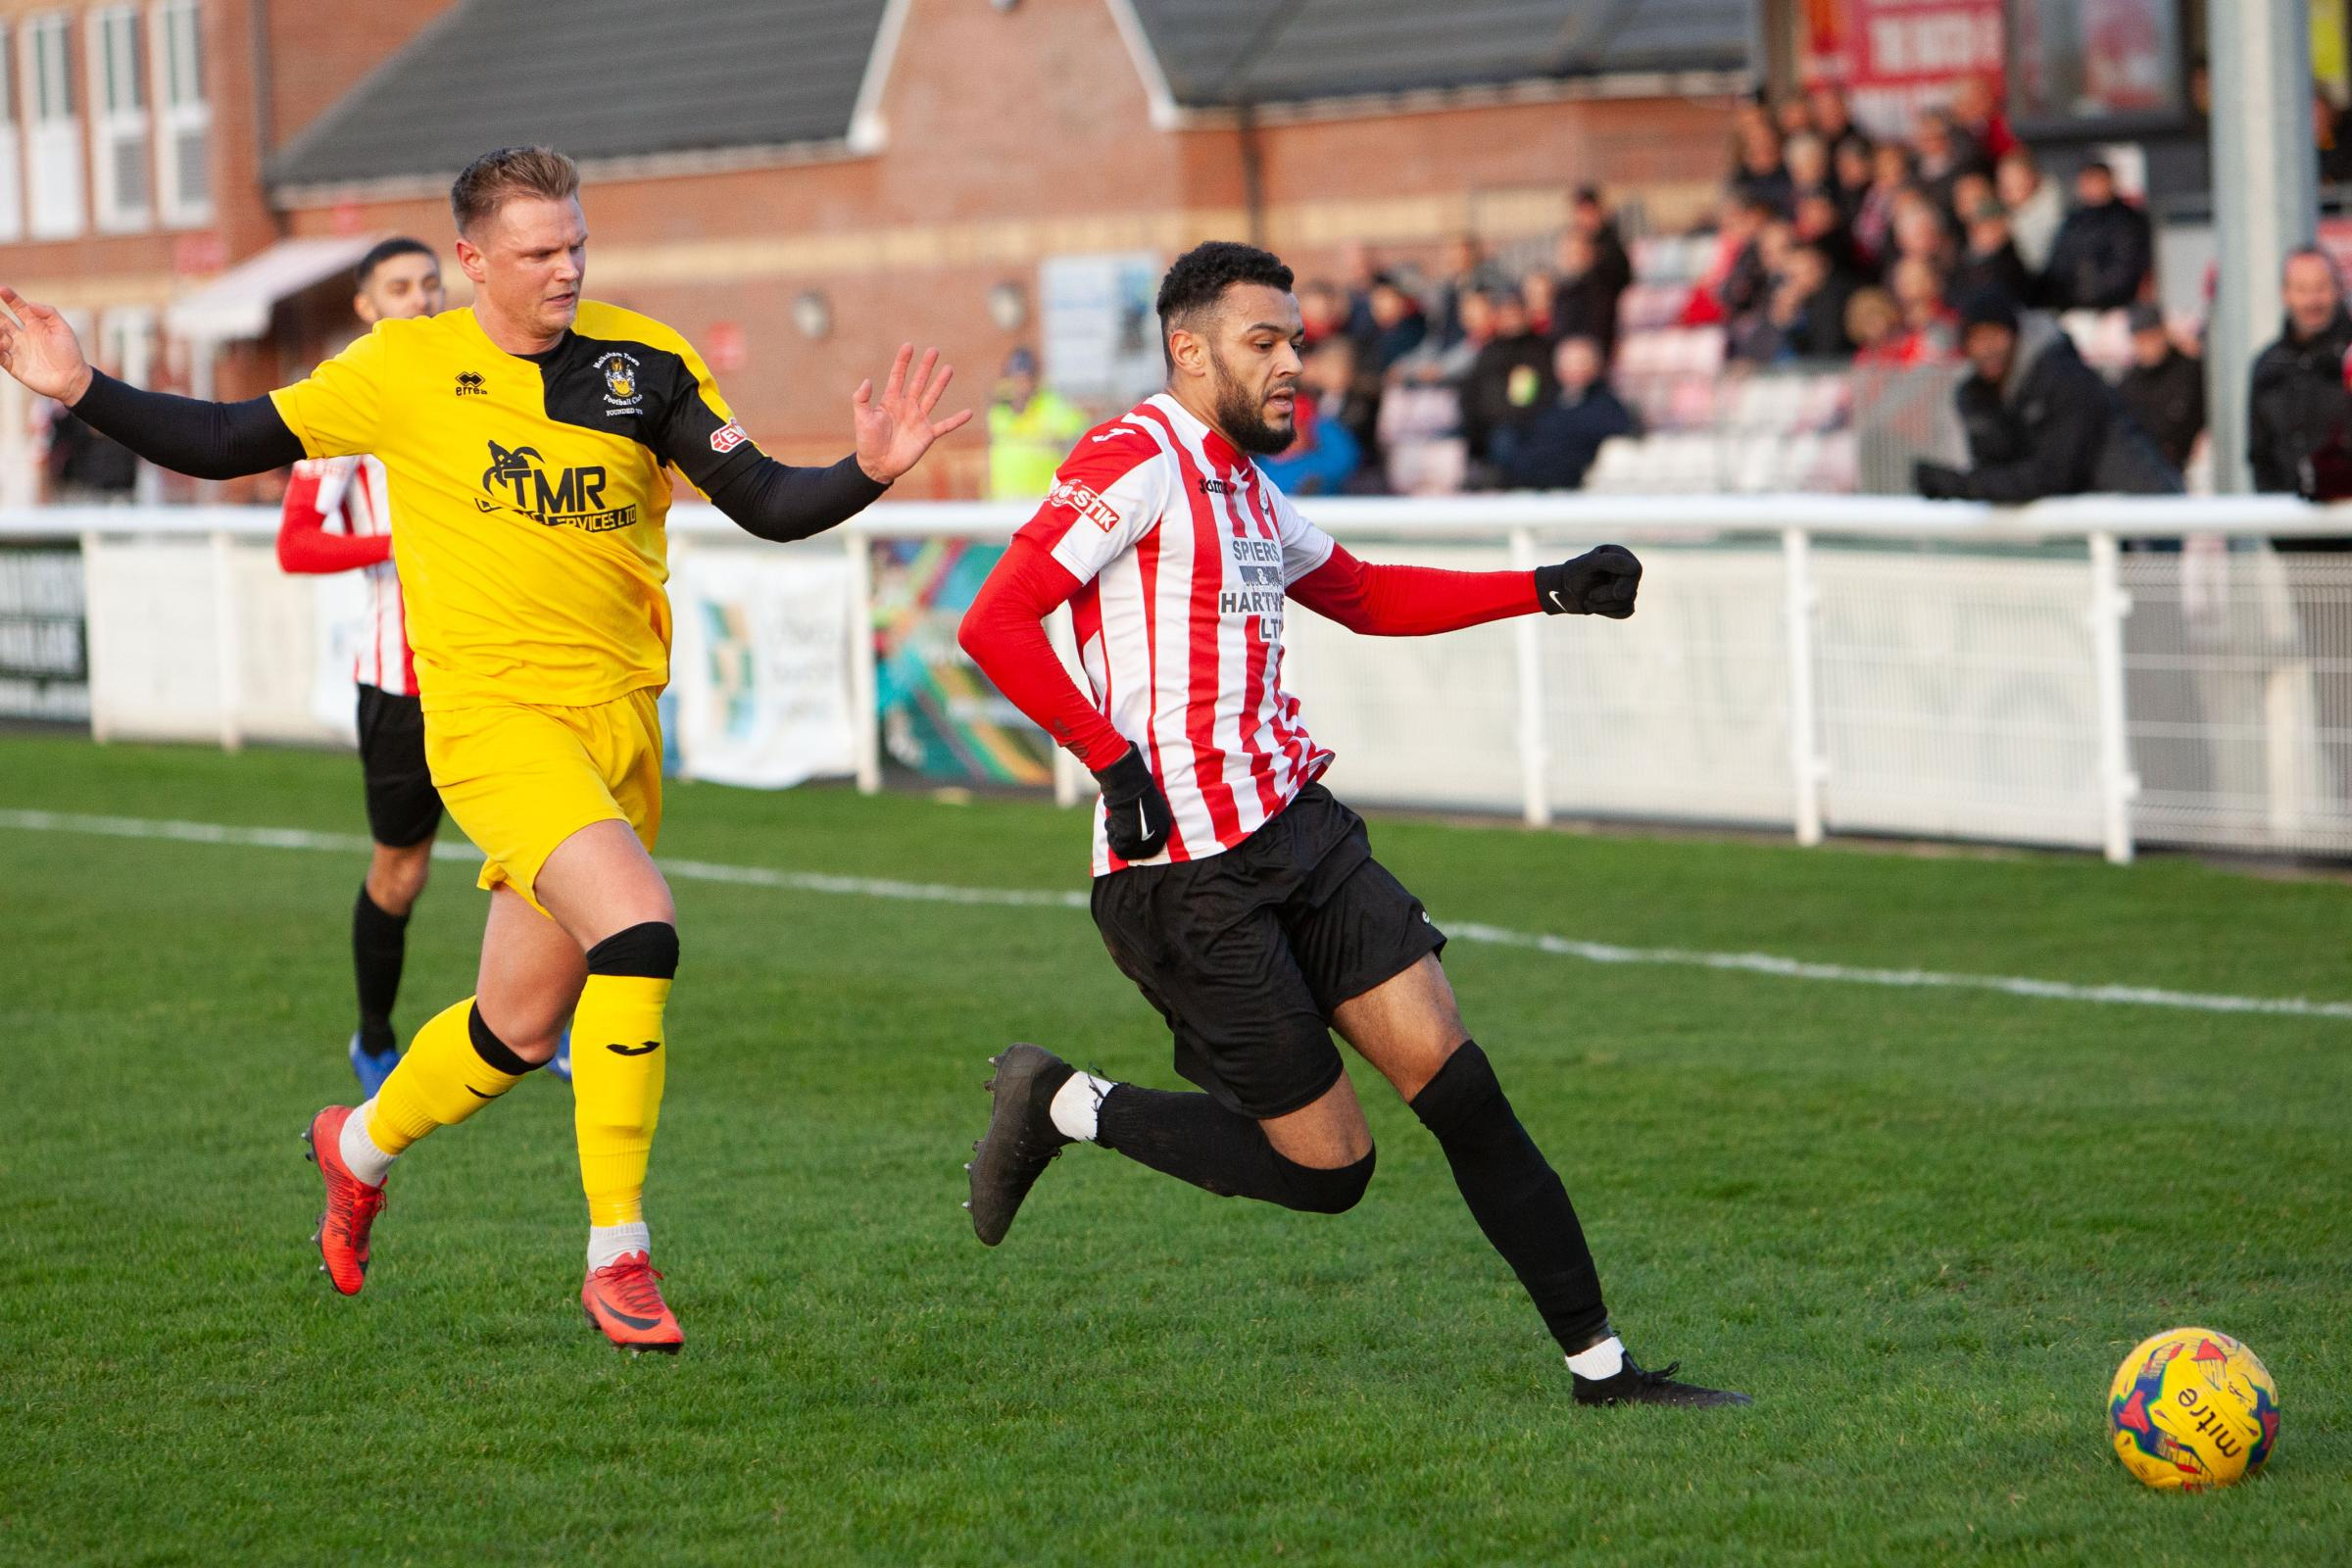 MAGNIFICENT SEVEN: Kane Simpson notched seven goals in two games for Evesham United with brothers Kye and Cory also scoring in a 7-1 win at Highworth Town. Pic: stuartpurfield.co.uk